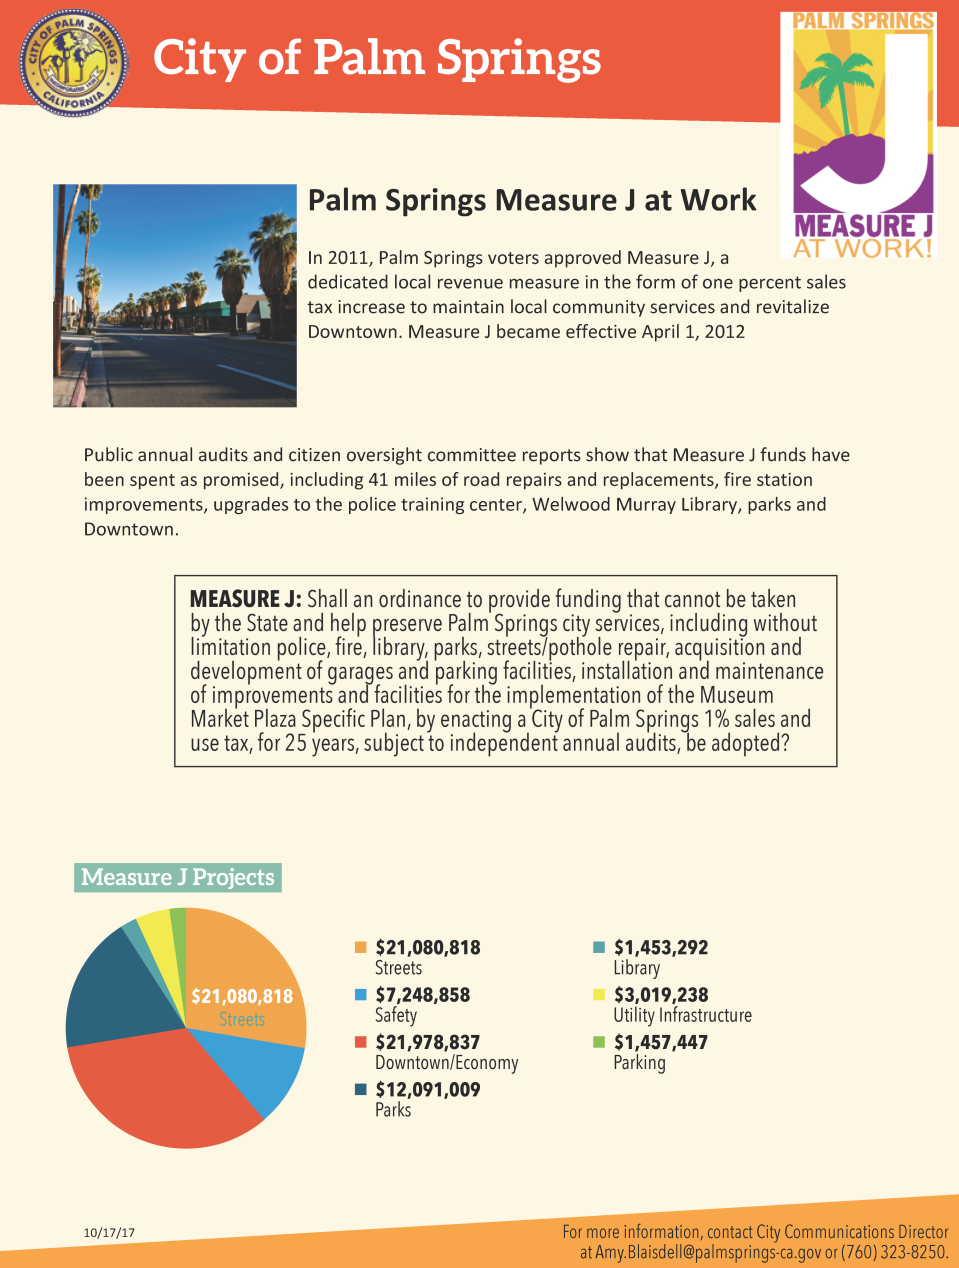 Palm SpringsCi1_TBWB_MeasureJHandout_5_101717